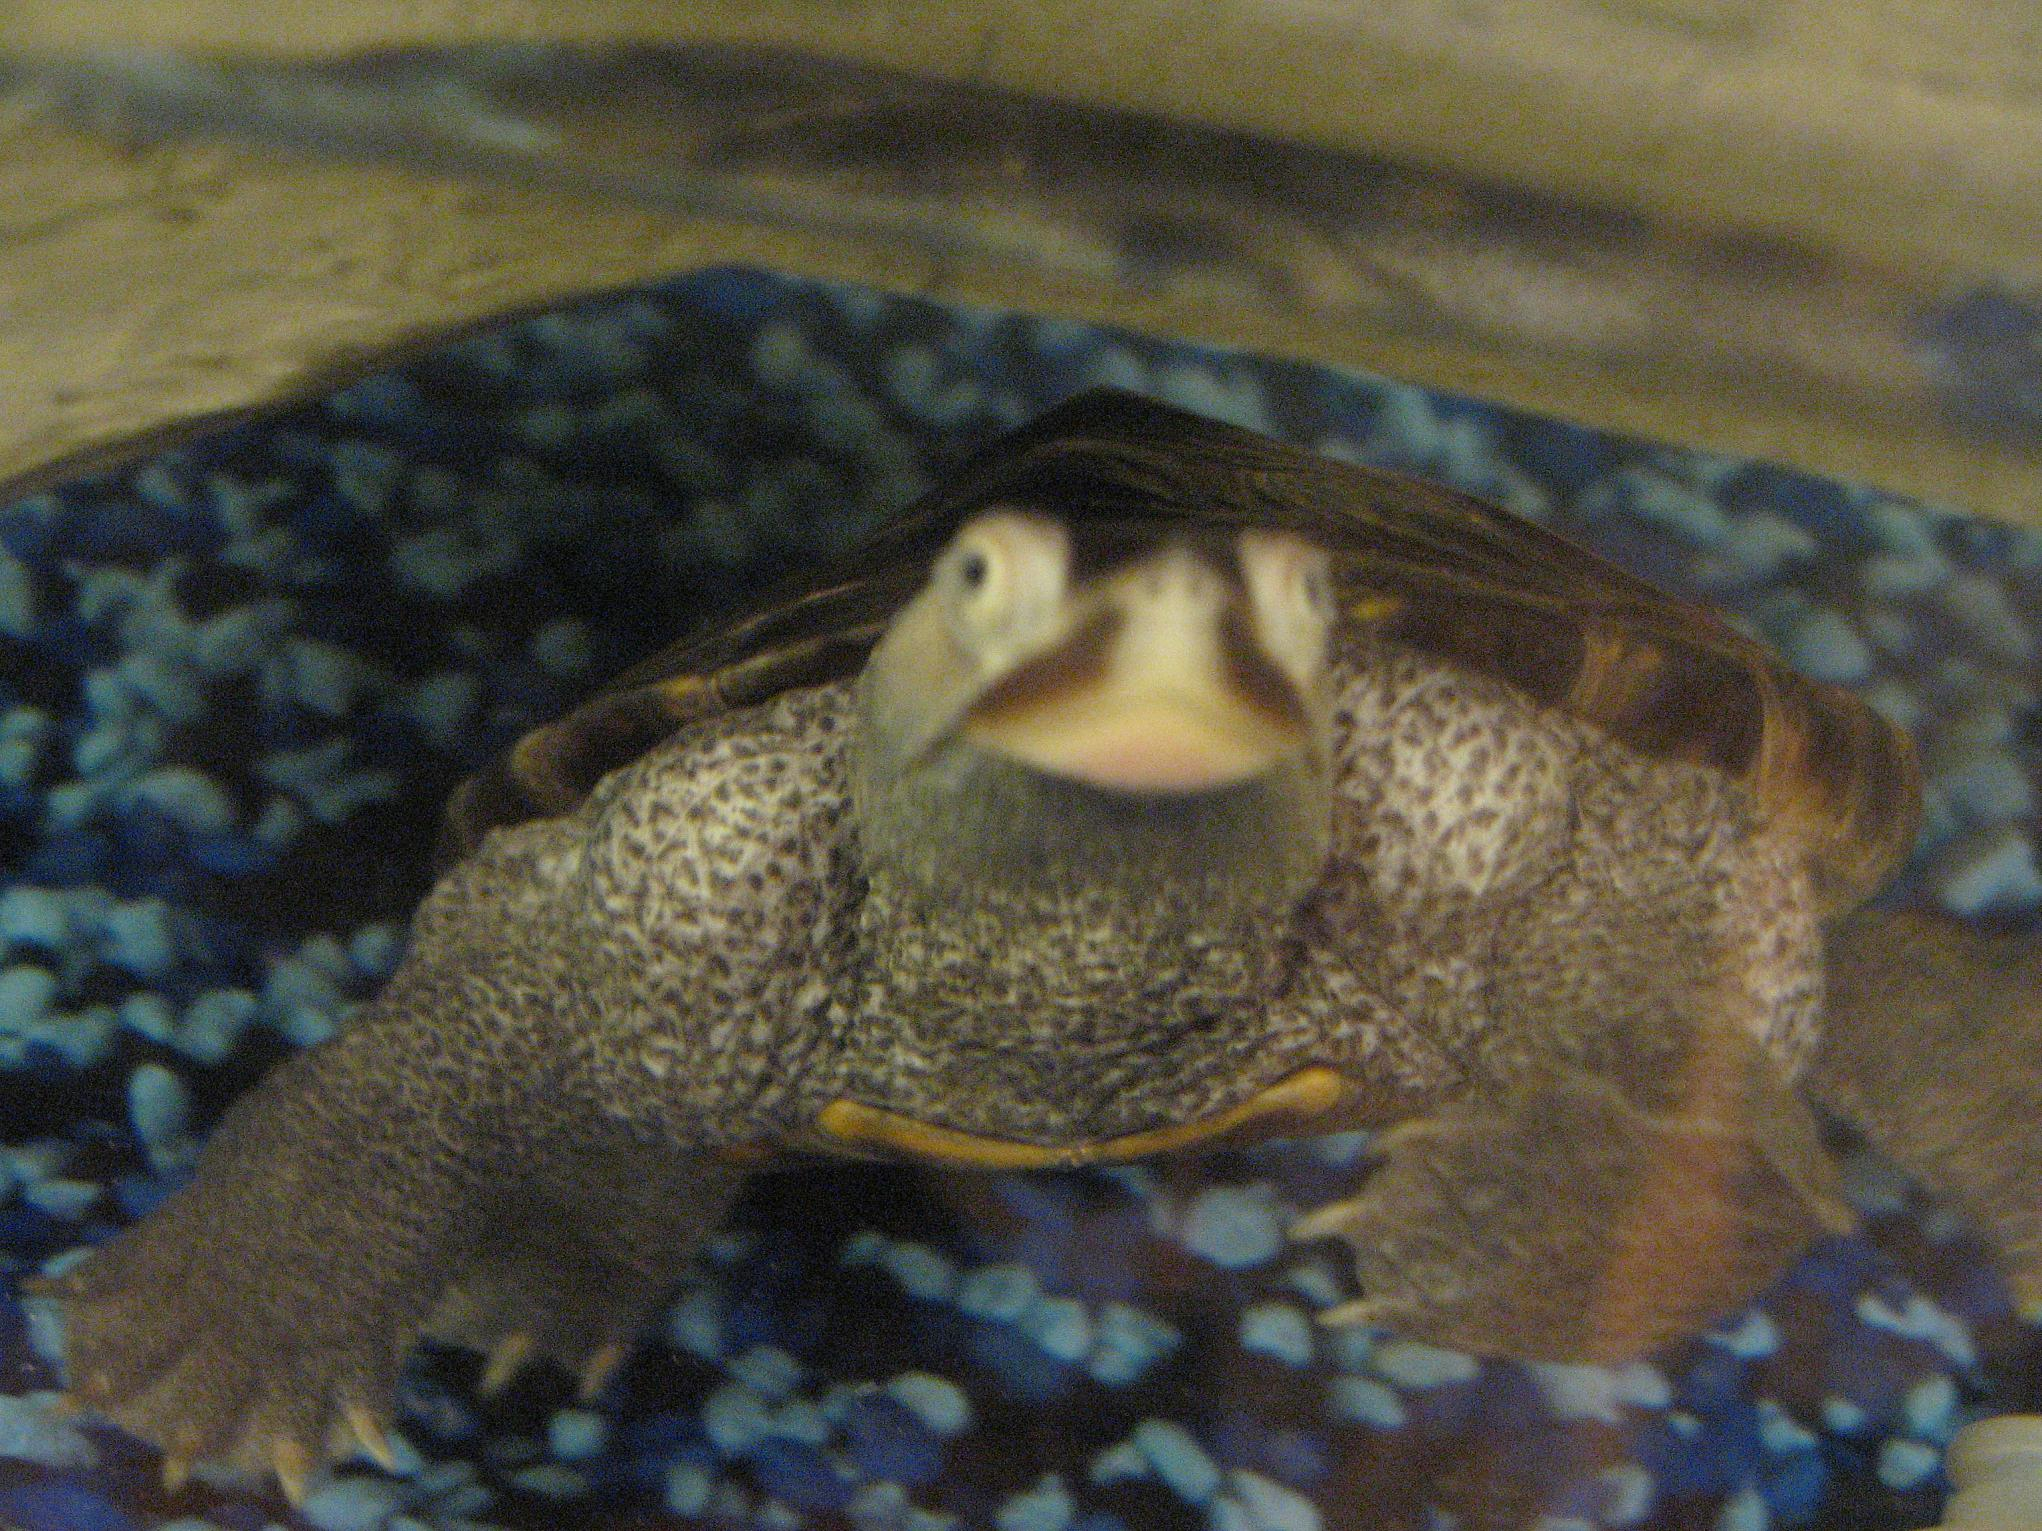 Let's see pics of the Turtle that guards your front door...-turtle-001.jpg